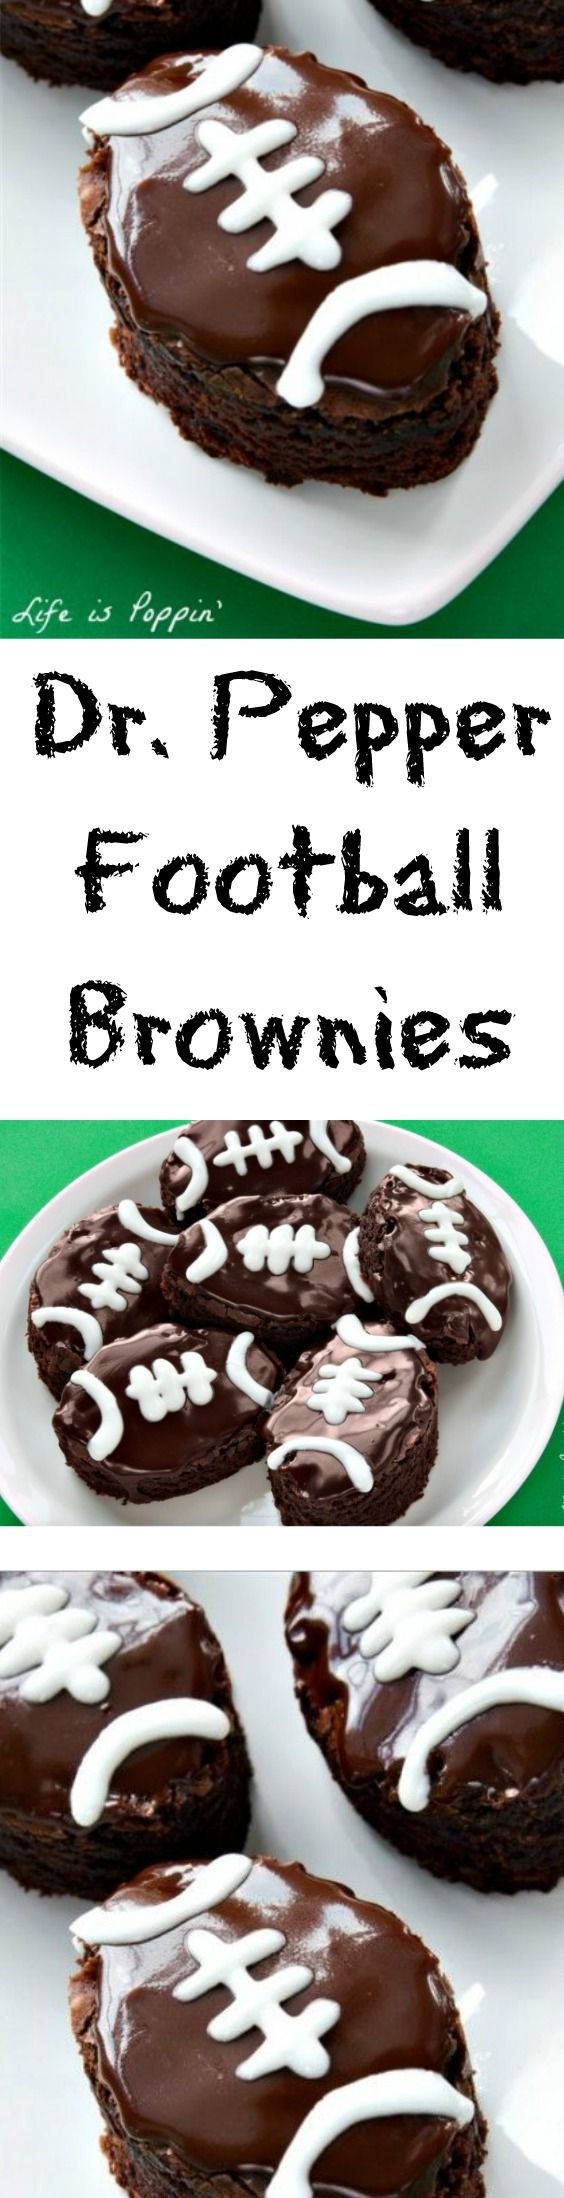 Football season is upon us and cheering for your favorite team is more than just a pastime for you and your family. It's a time-honored tradition. Be sure to make these Dr. Pepper football brownies for the next big game!